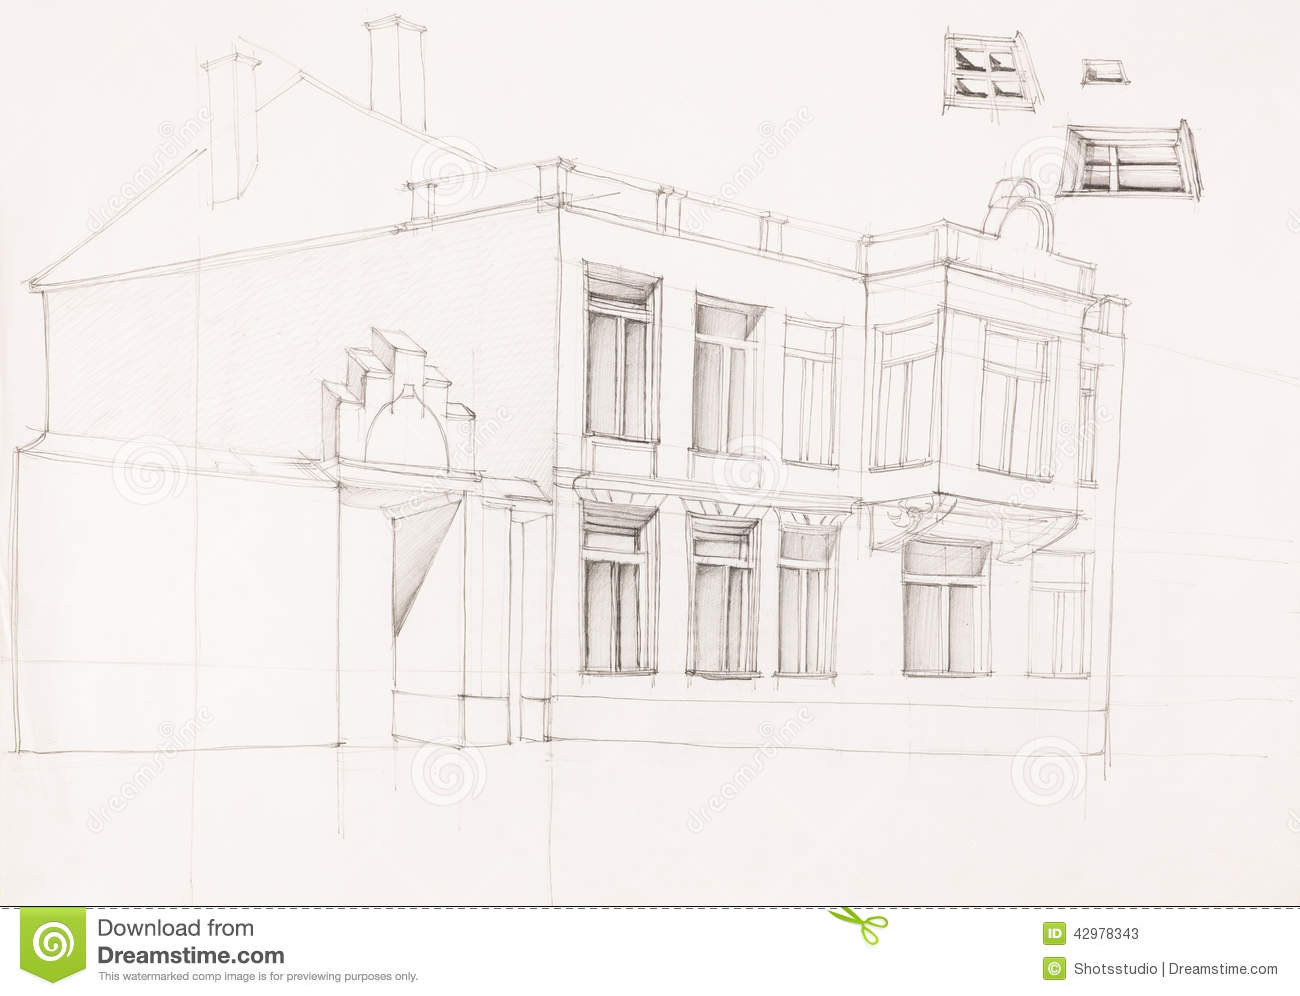 Dessin de vieille fa ade de maison illustration stock for Dessin facade maison